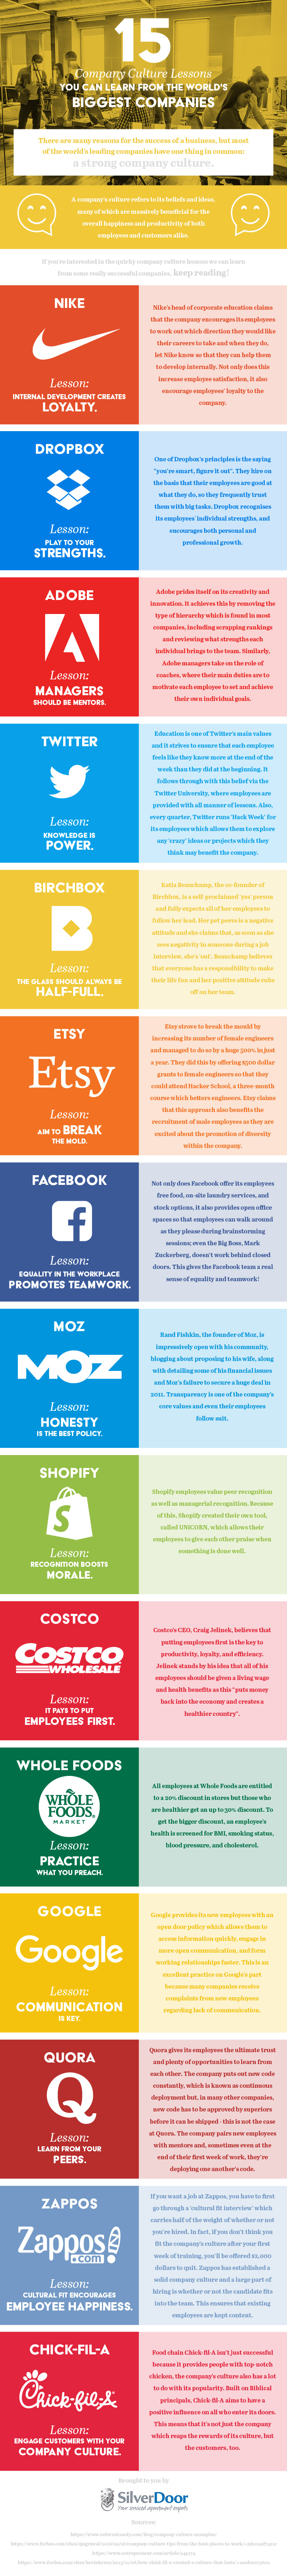 Company Culture: How It Defines Top Corporates - Infographic